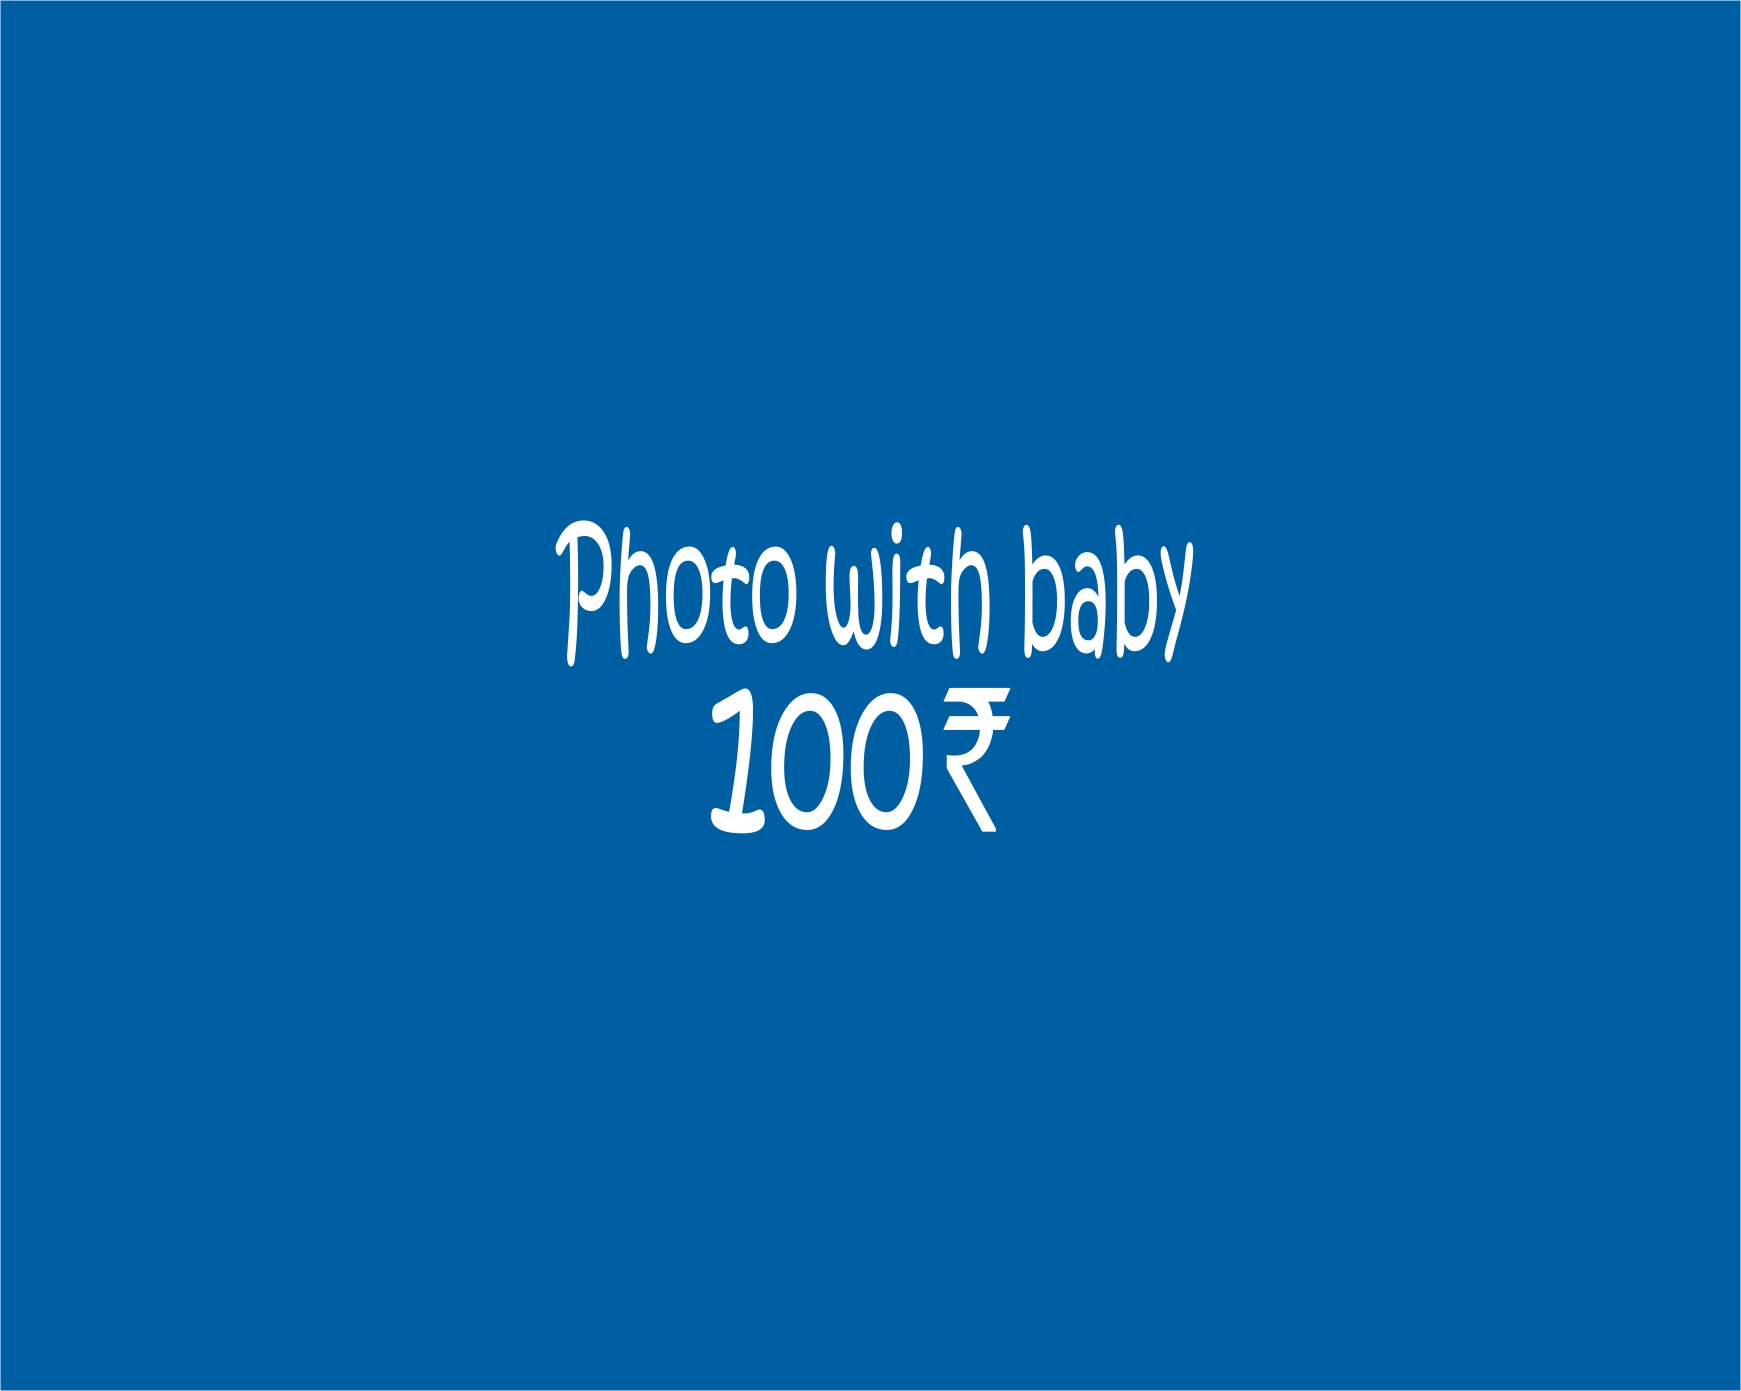 Photo-with-baby.jpg